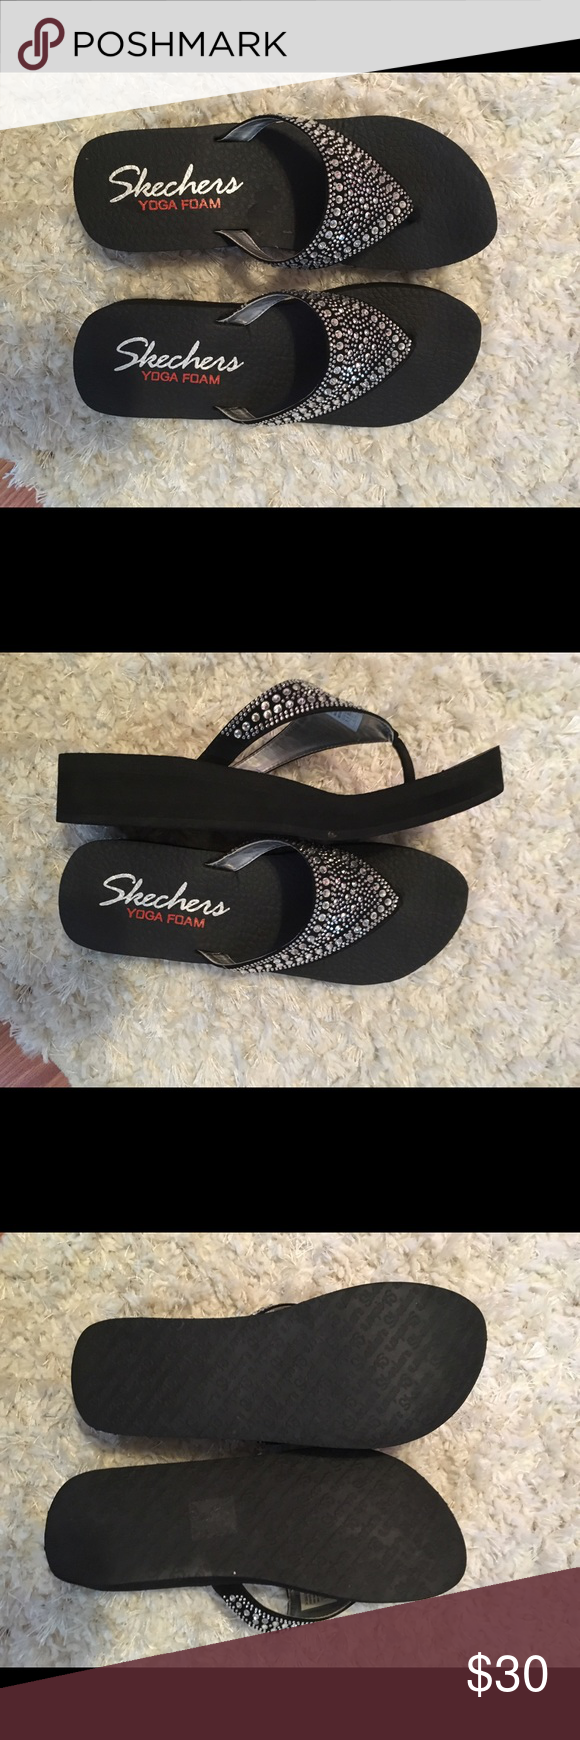 dd14c375aa86dc Skechers Yoga Foam Flip Flops Worn once - bought were too big Shoes Sandals